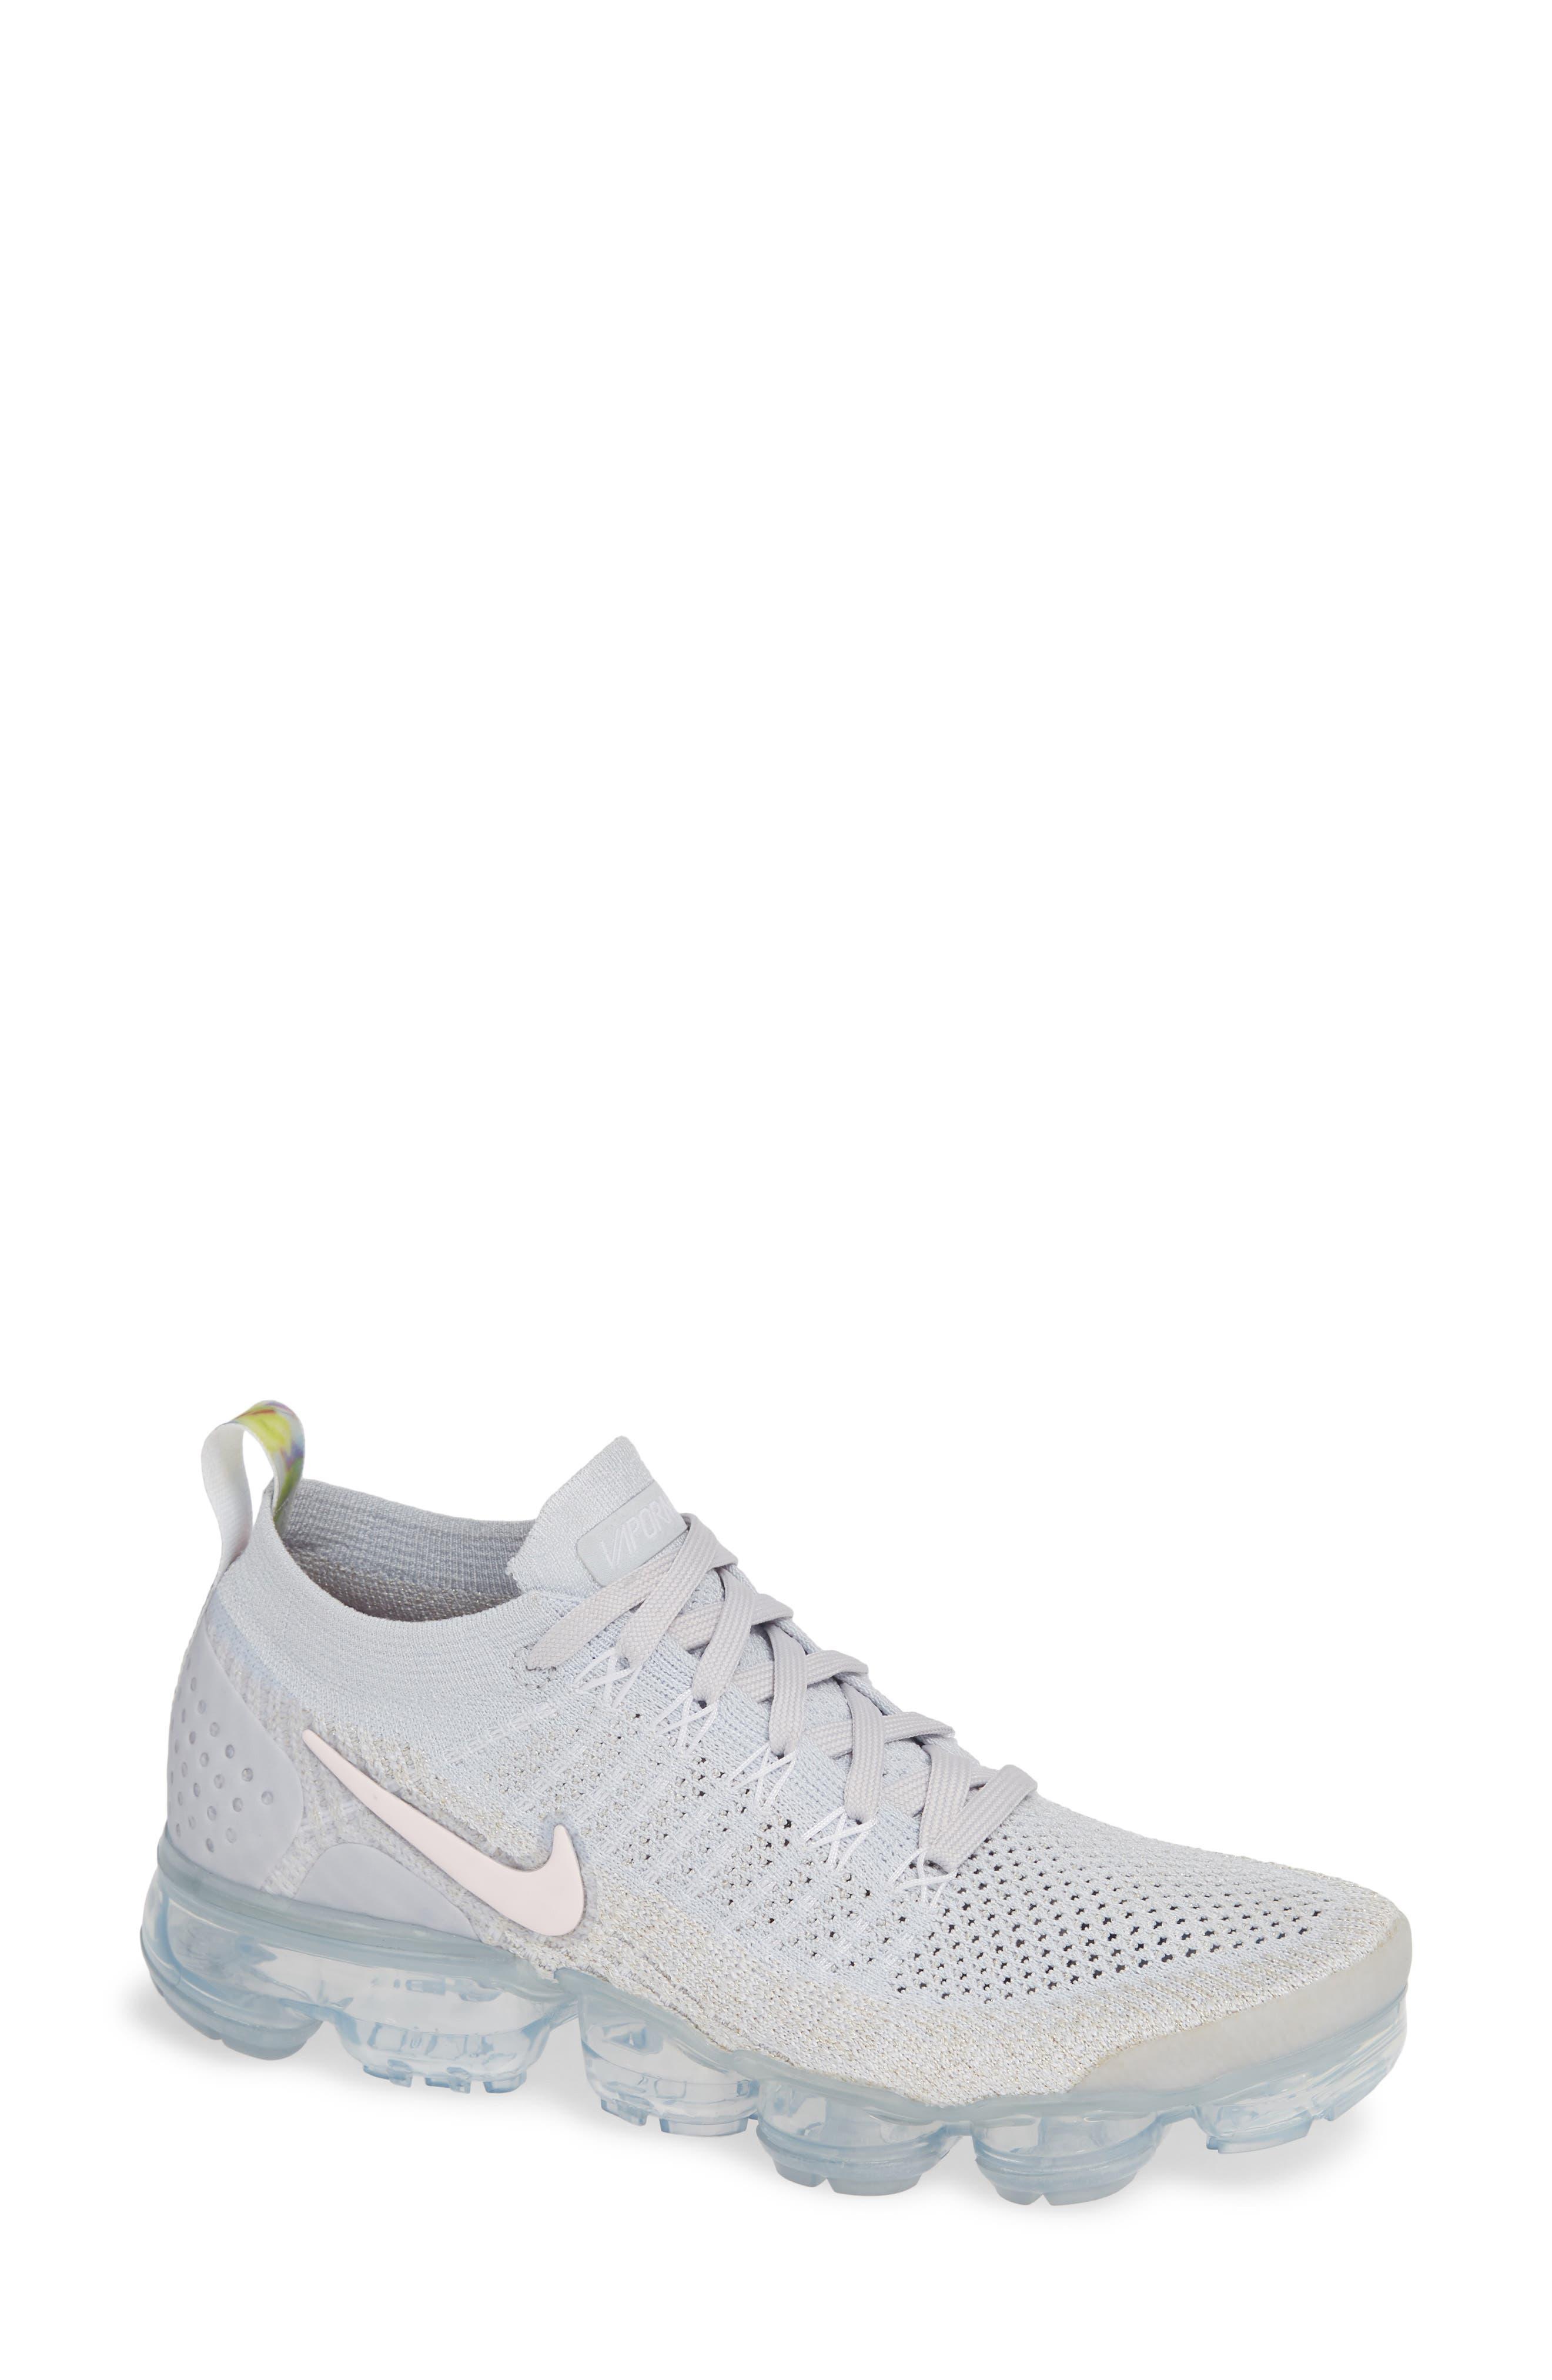 Air VaporMax Flyknit 2 Running Shoe,                         Main,                         color, PURE PLATINUM/ PINK-WHITE